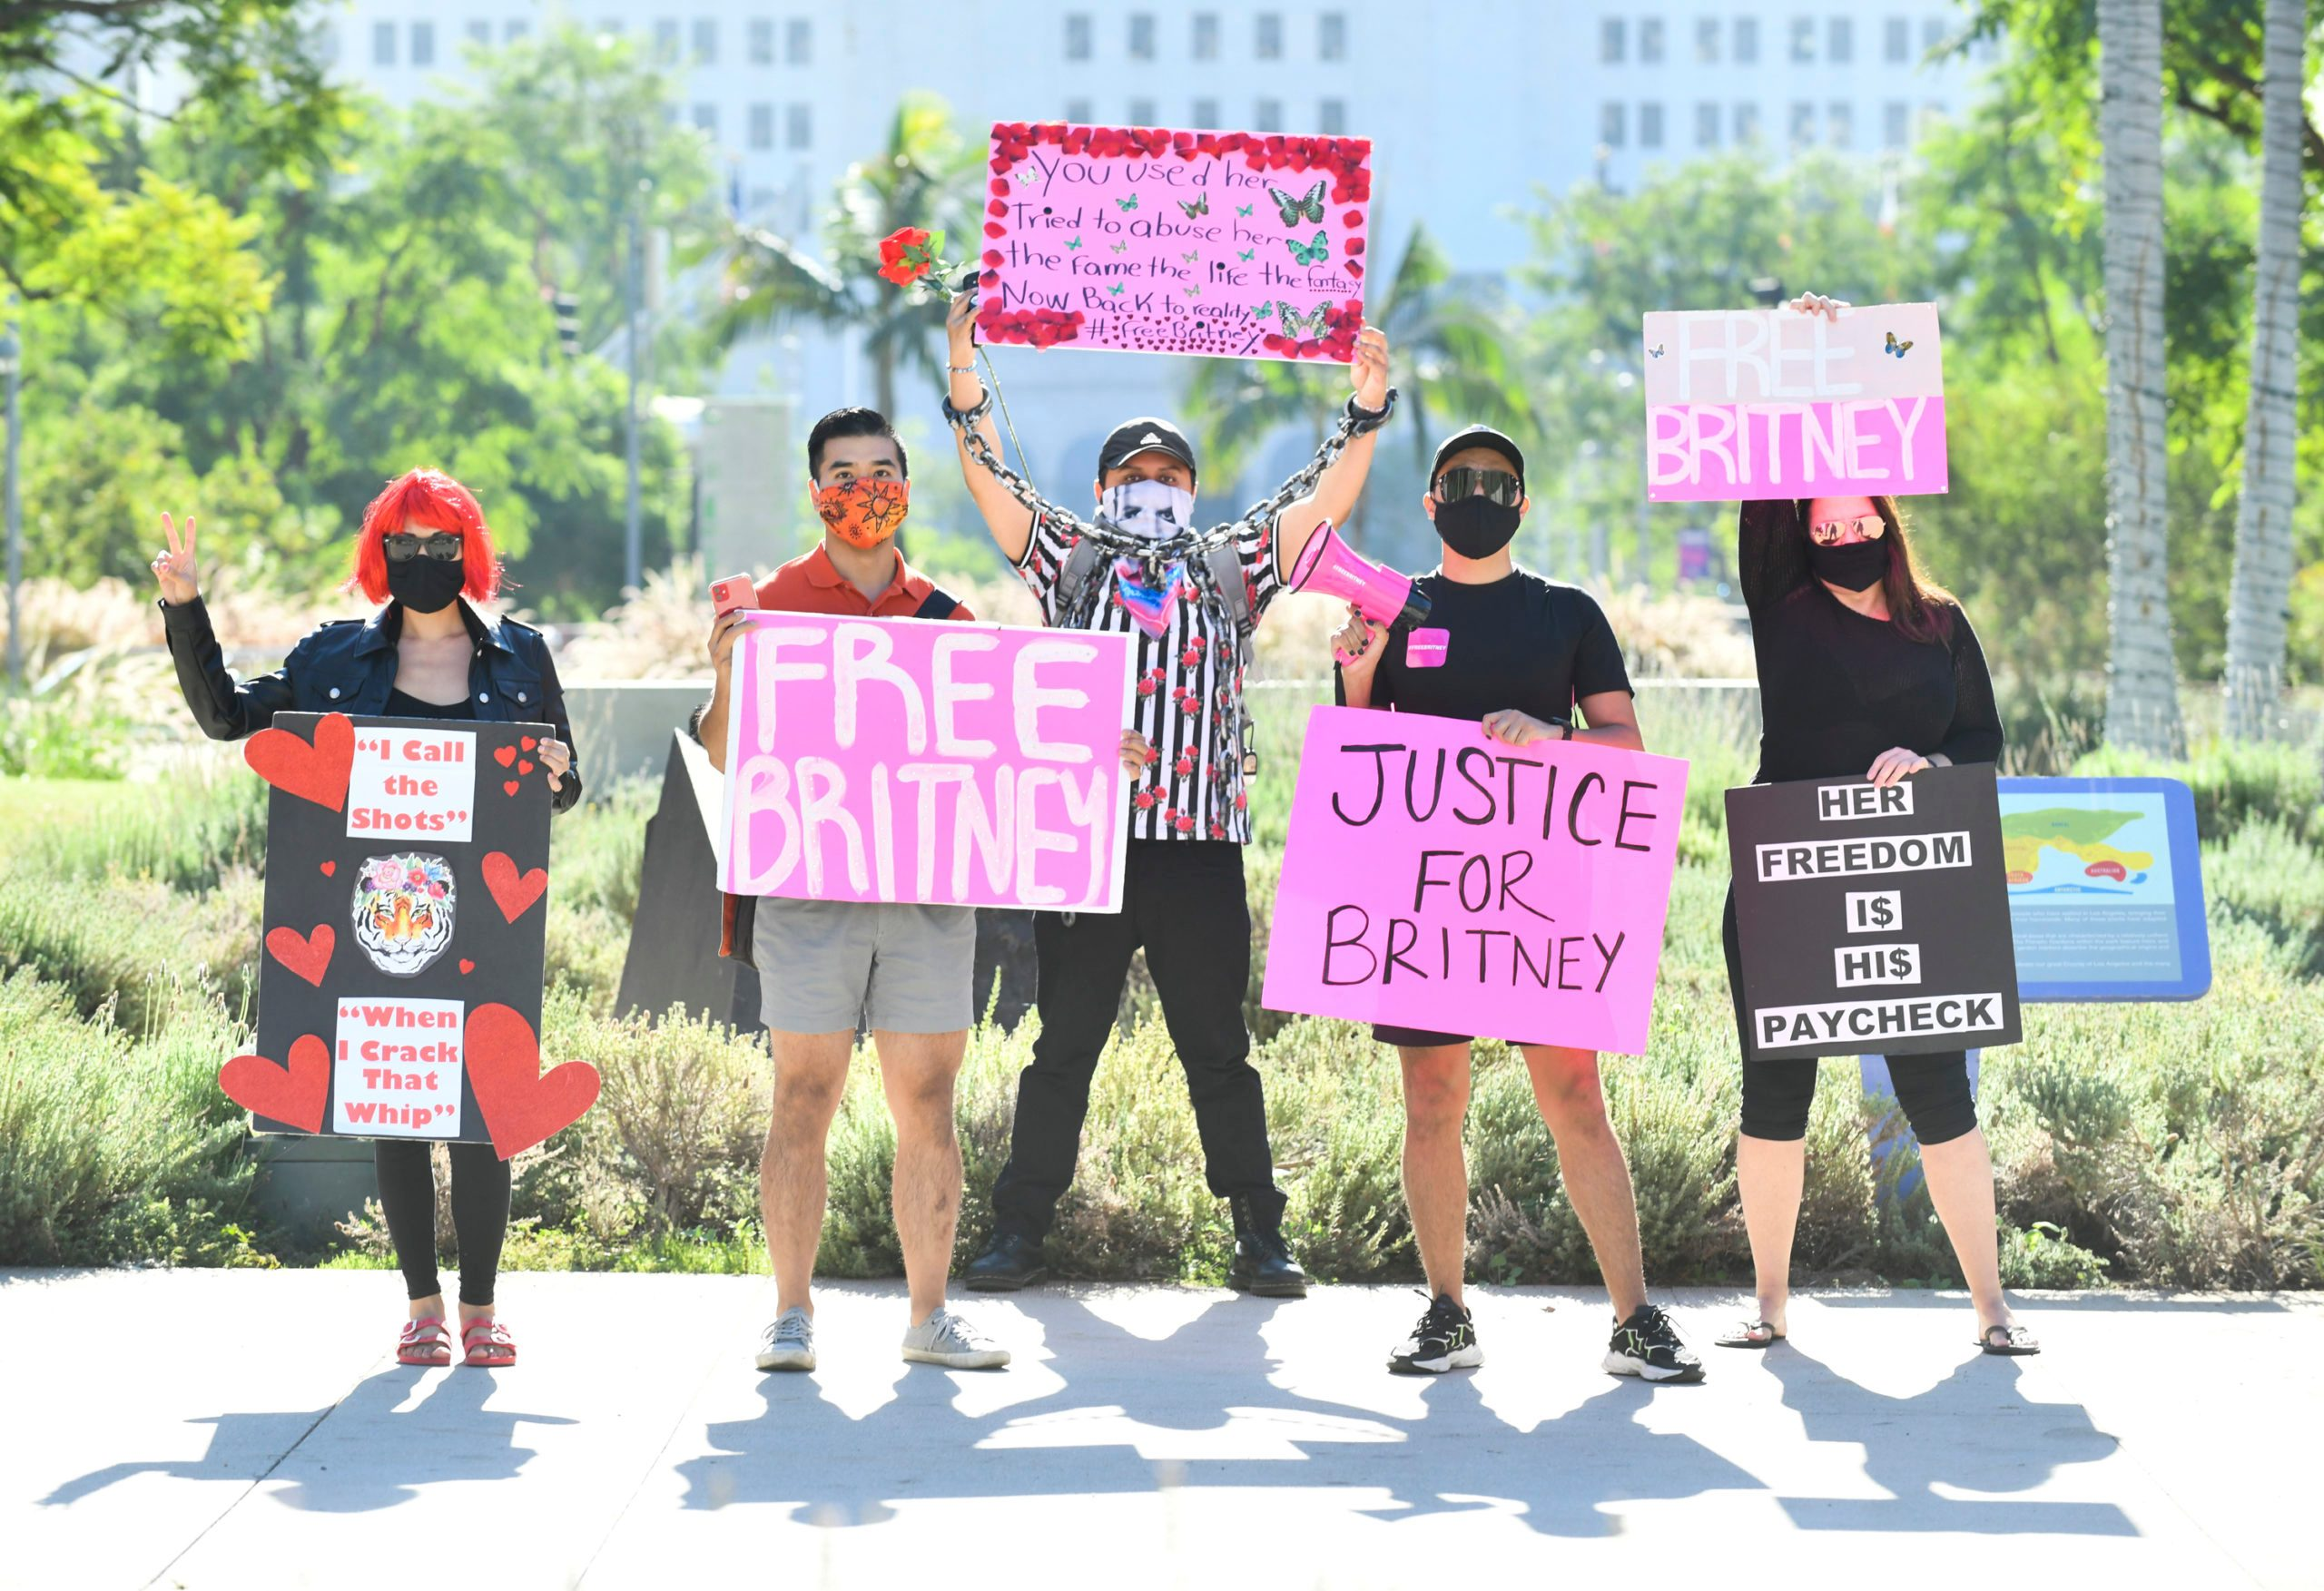 #FreeBritney Protest Outside Courthouse In Los Angeles